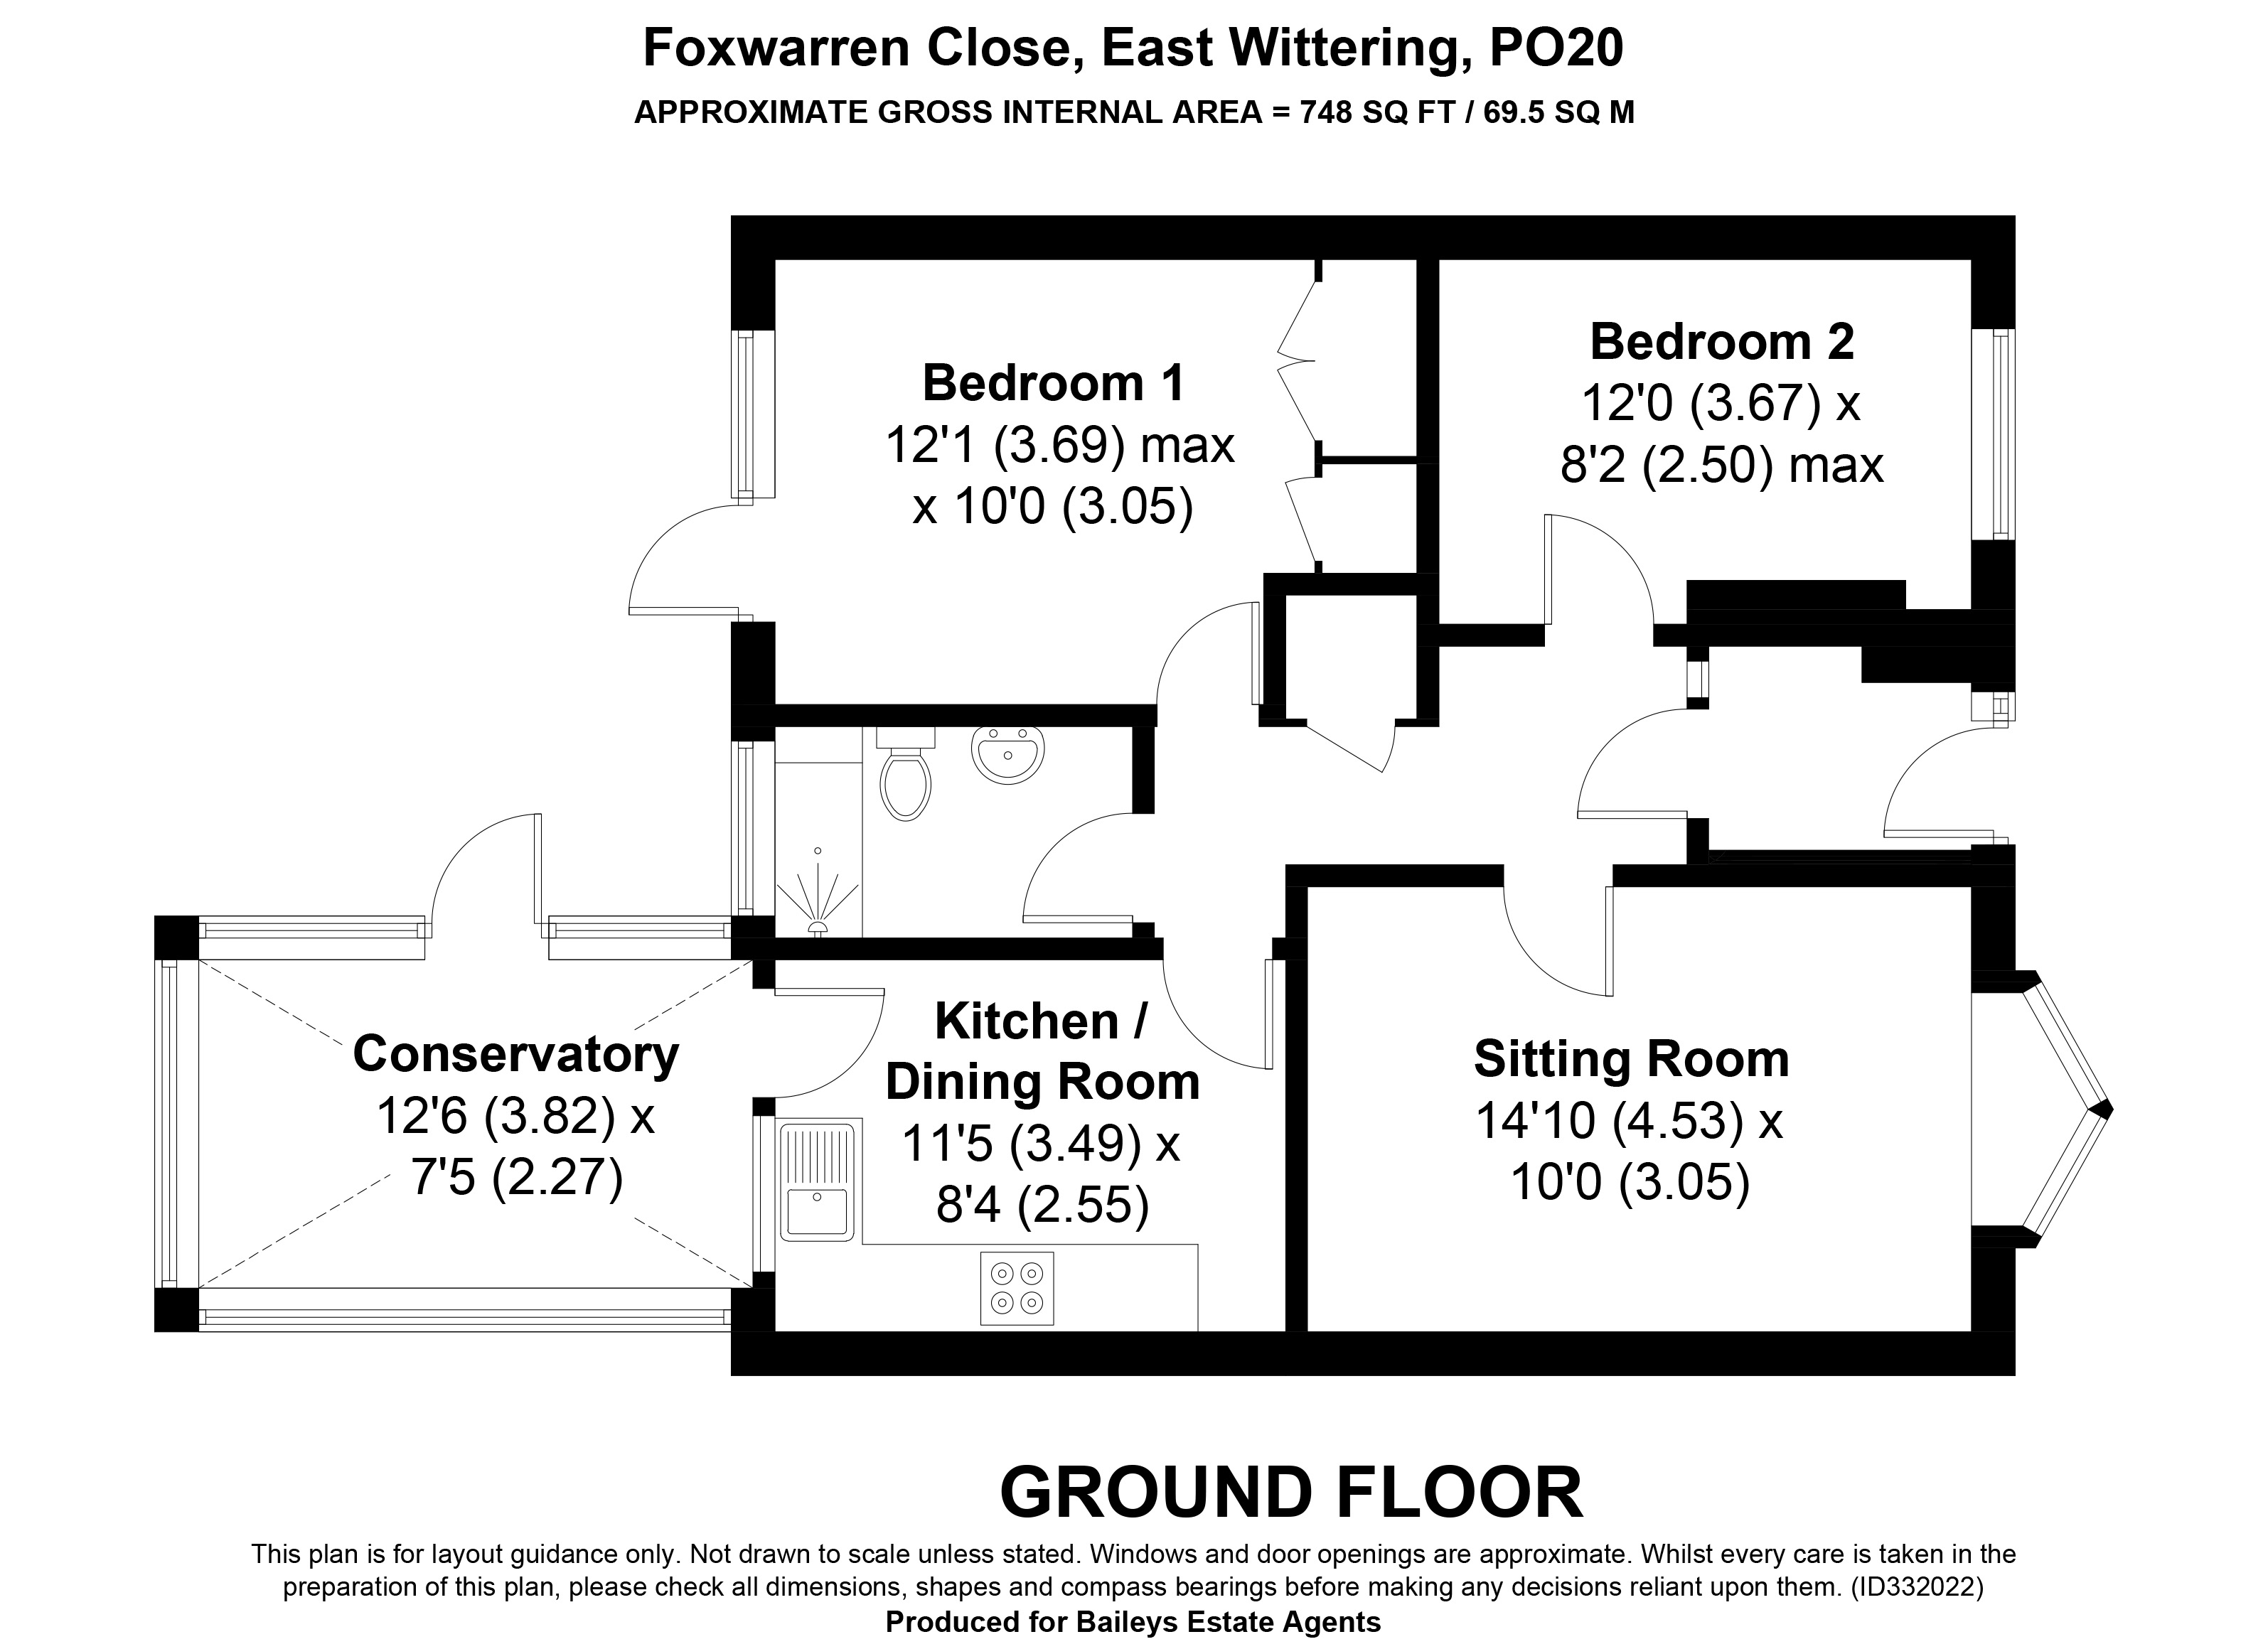 Property for Sale, East Wittering: 7 Foxwarren Close